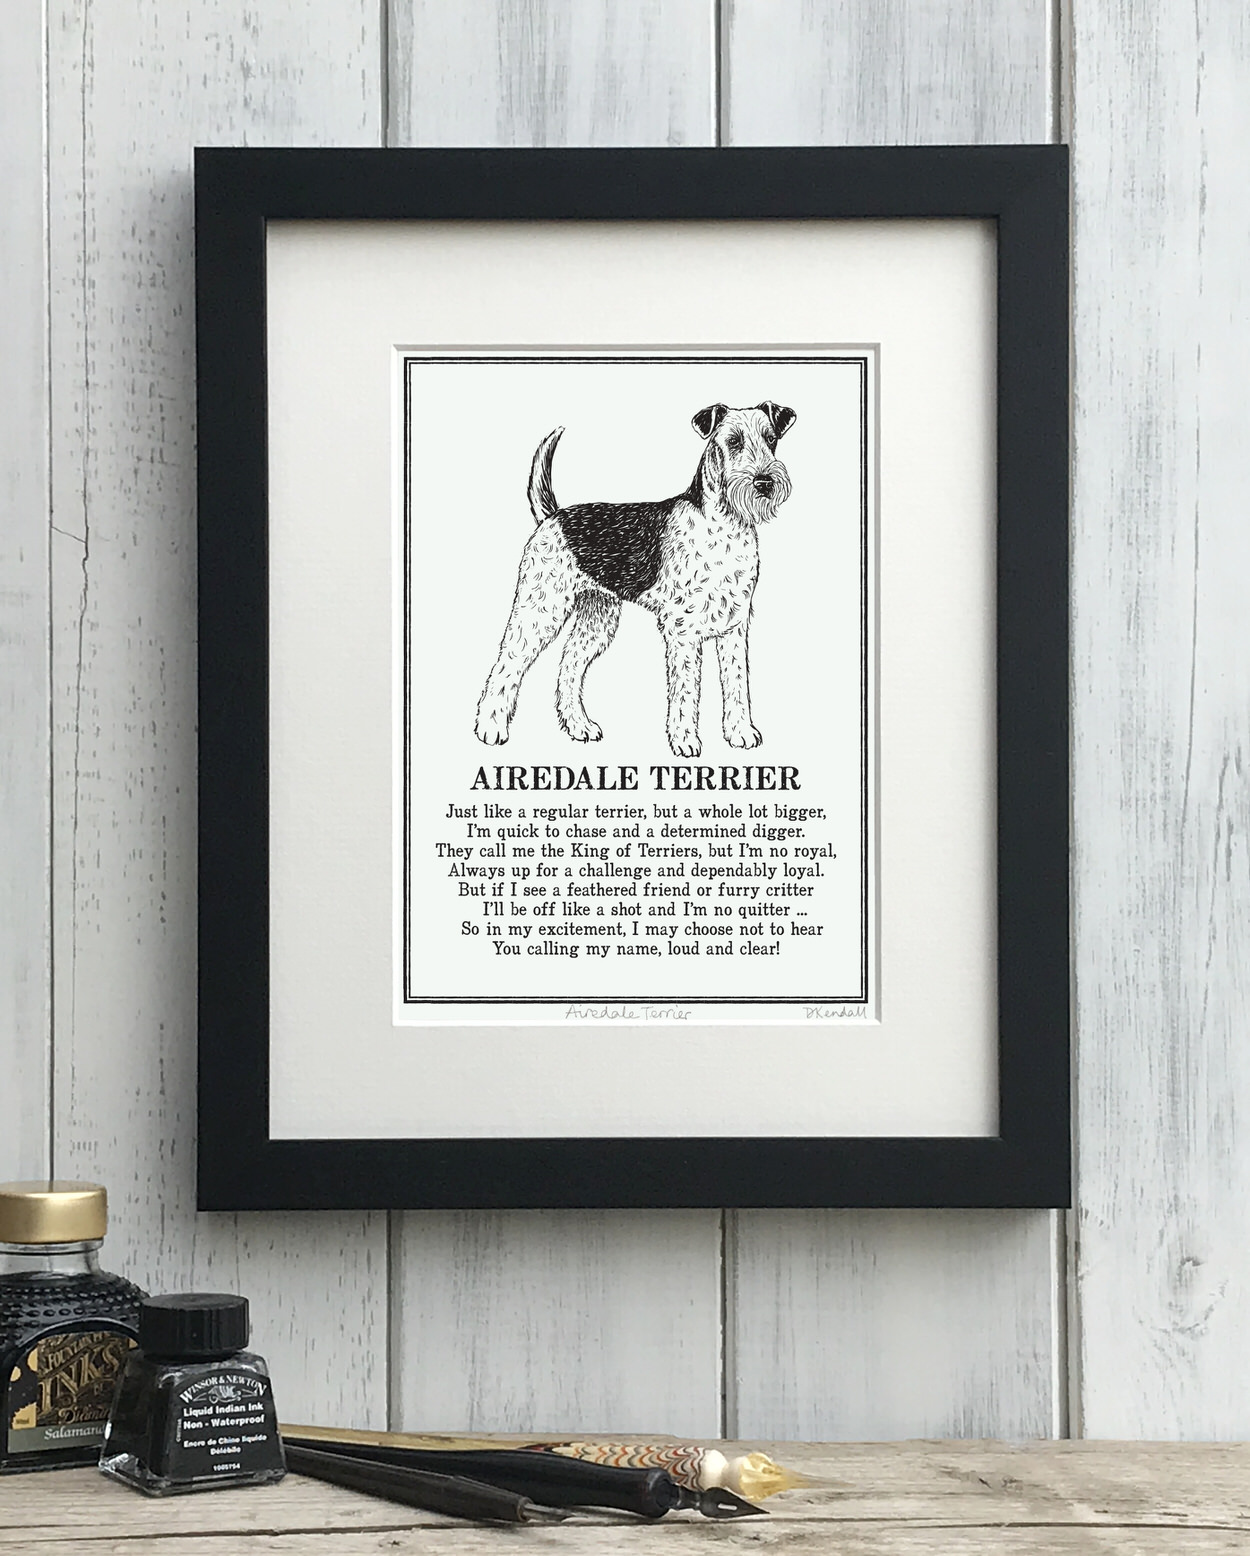 Airedale Terrier print illustrated poem by The Enlightened Hound